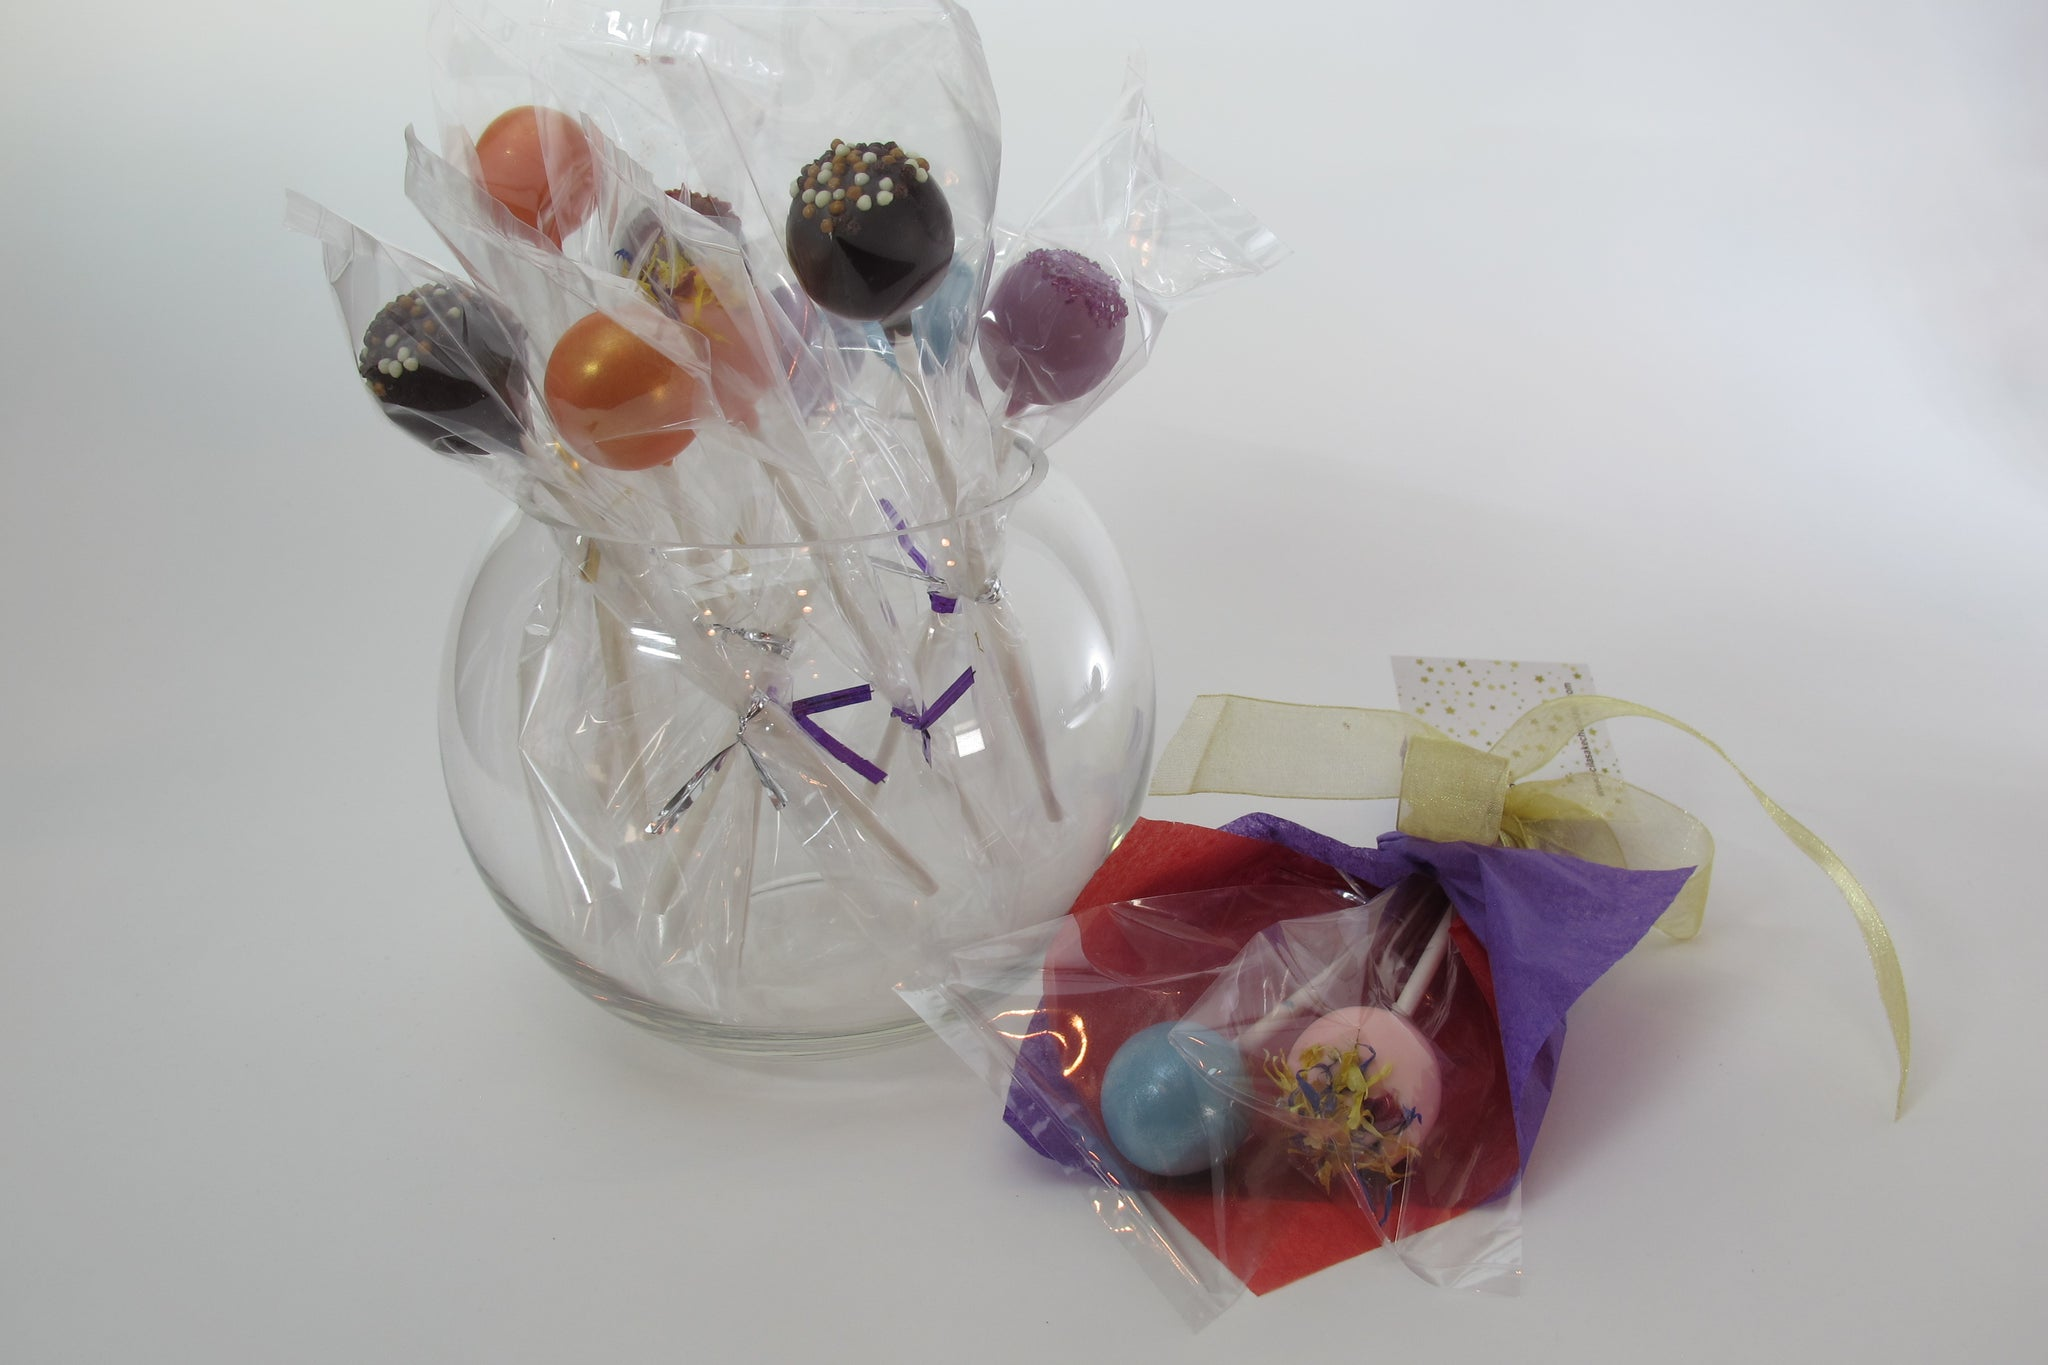 2 Single Stem Truffle Flower Bouquet & individually wrapped Truffle Flowers with various flavours